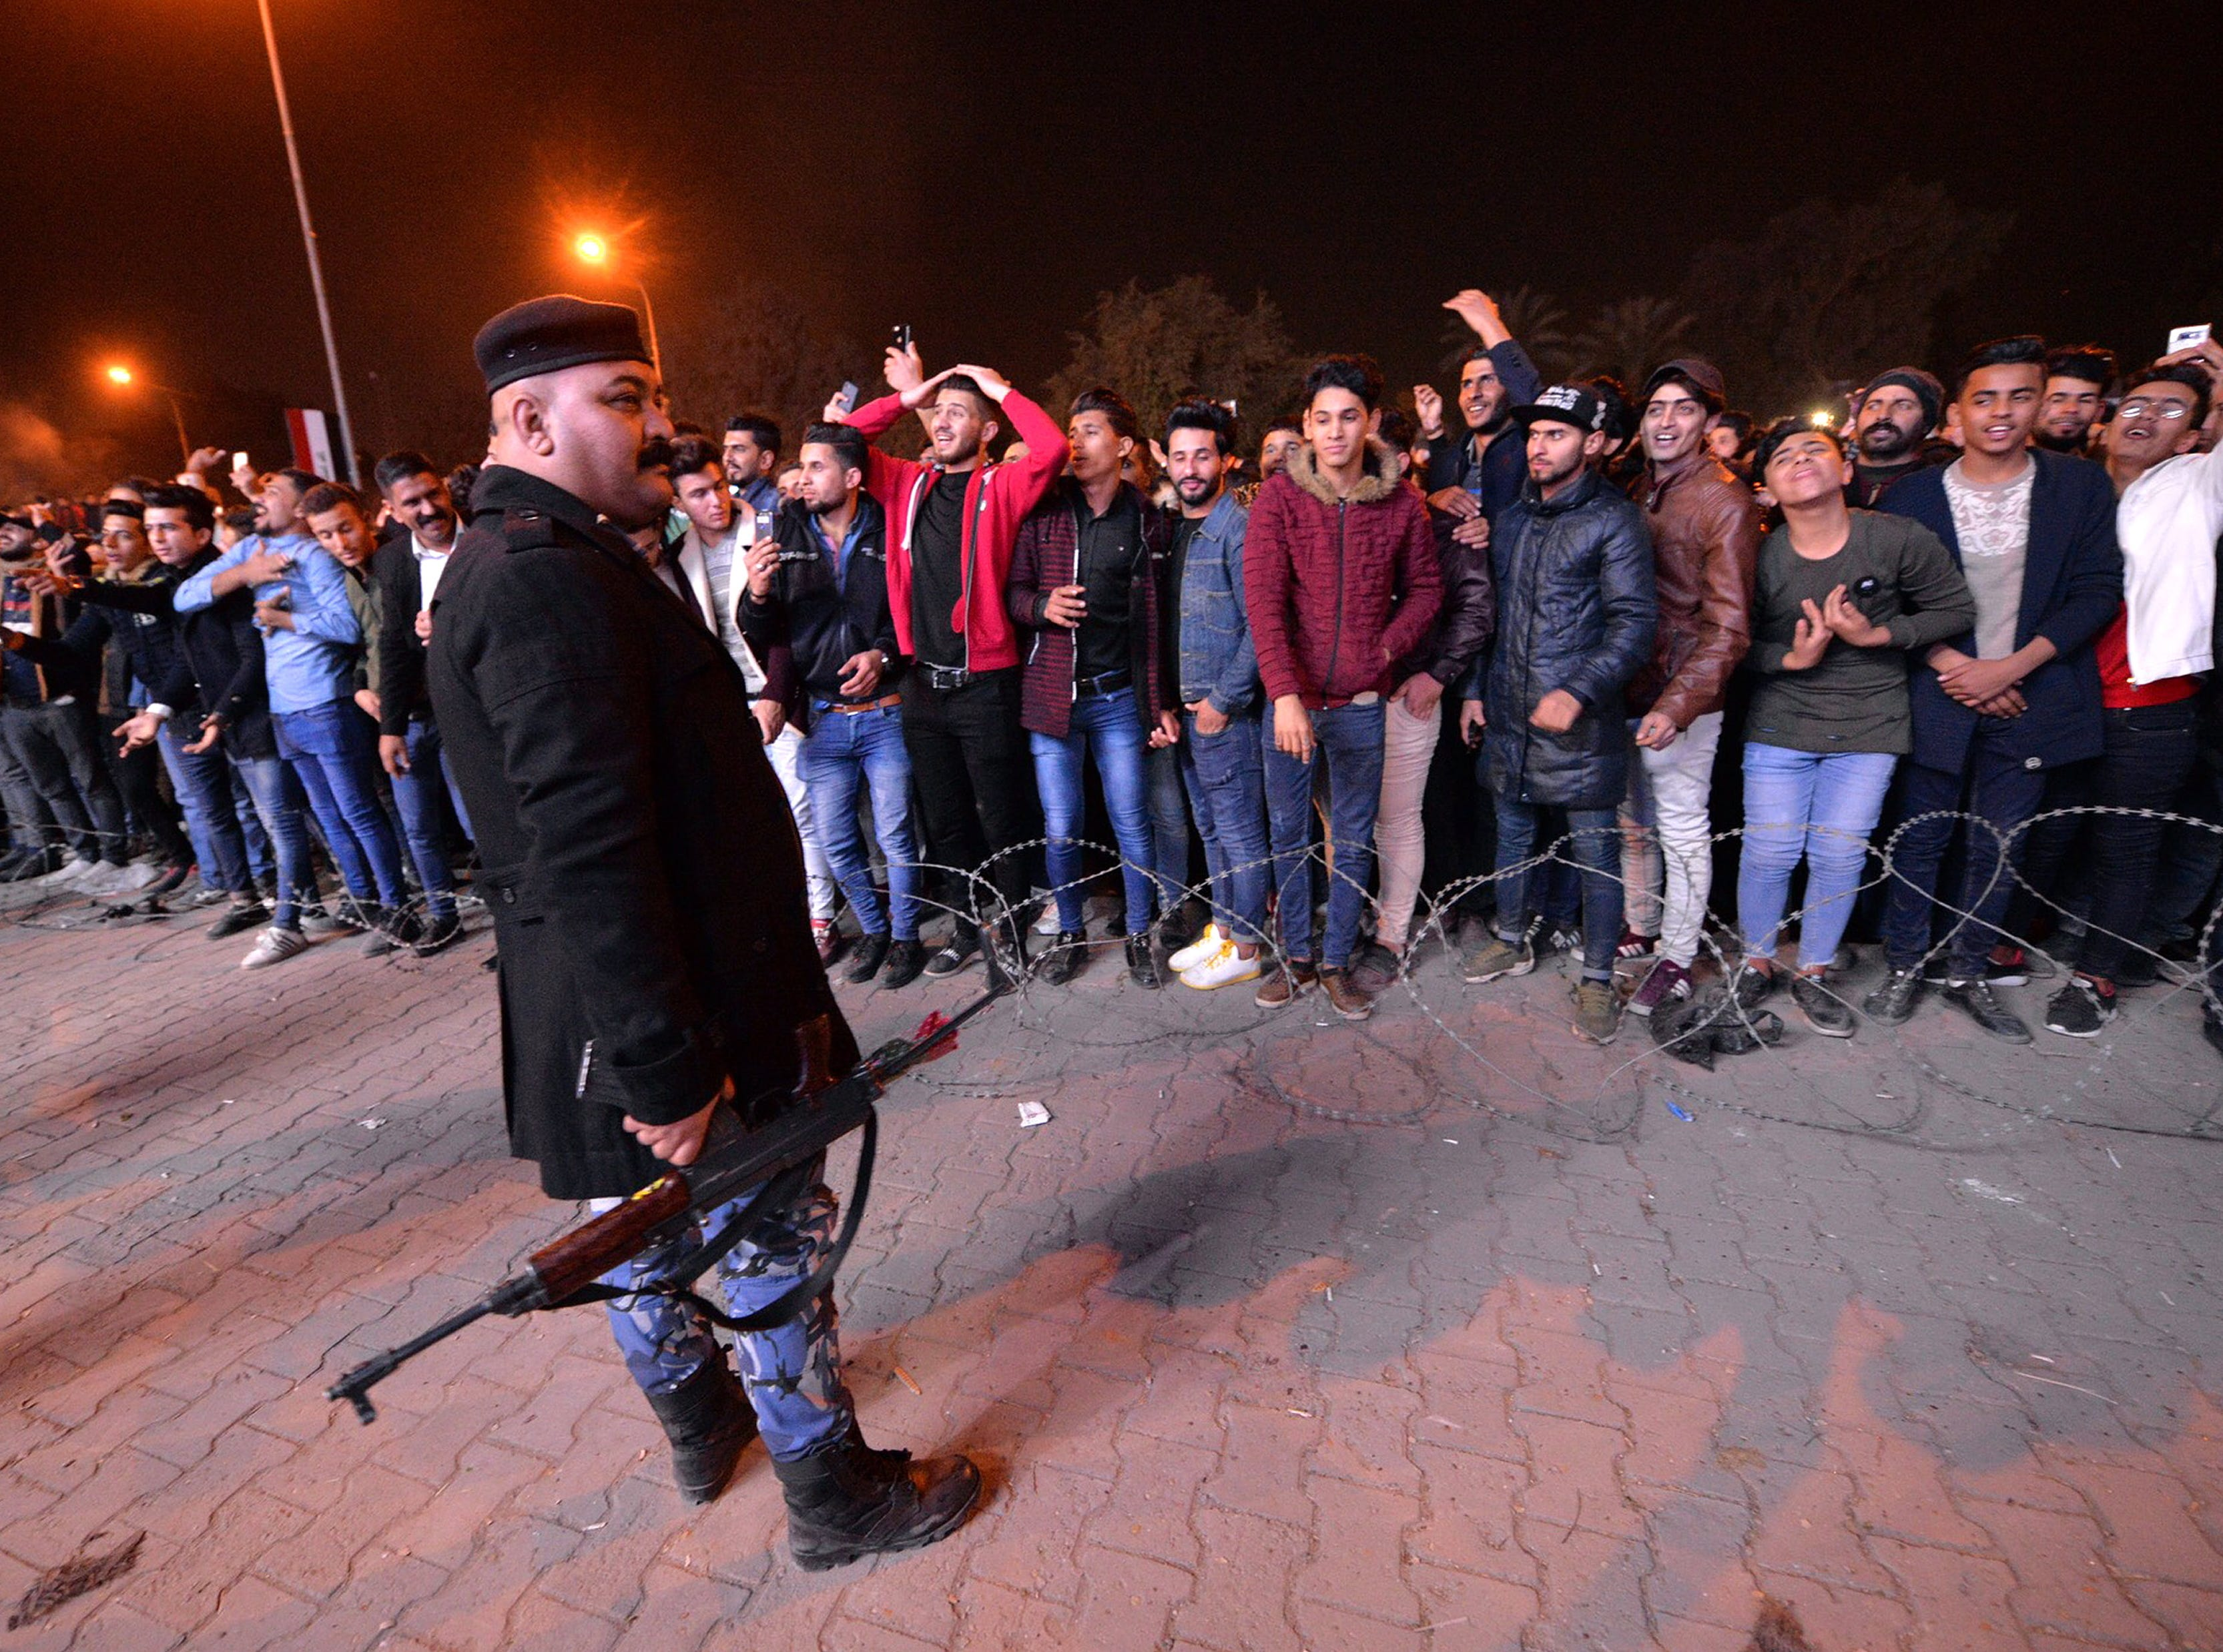 An armed Iraqi policeman stands guard as Iraqis celebrate the New Year 2019 in Baghdad, Iraq, on early Jan. 1, 2019.